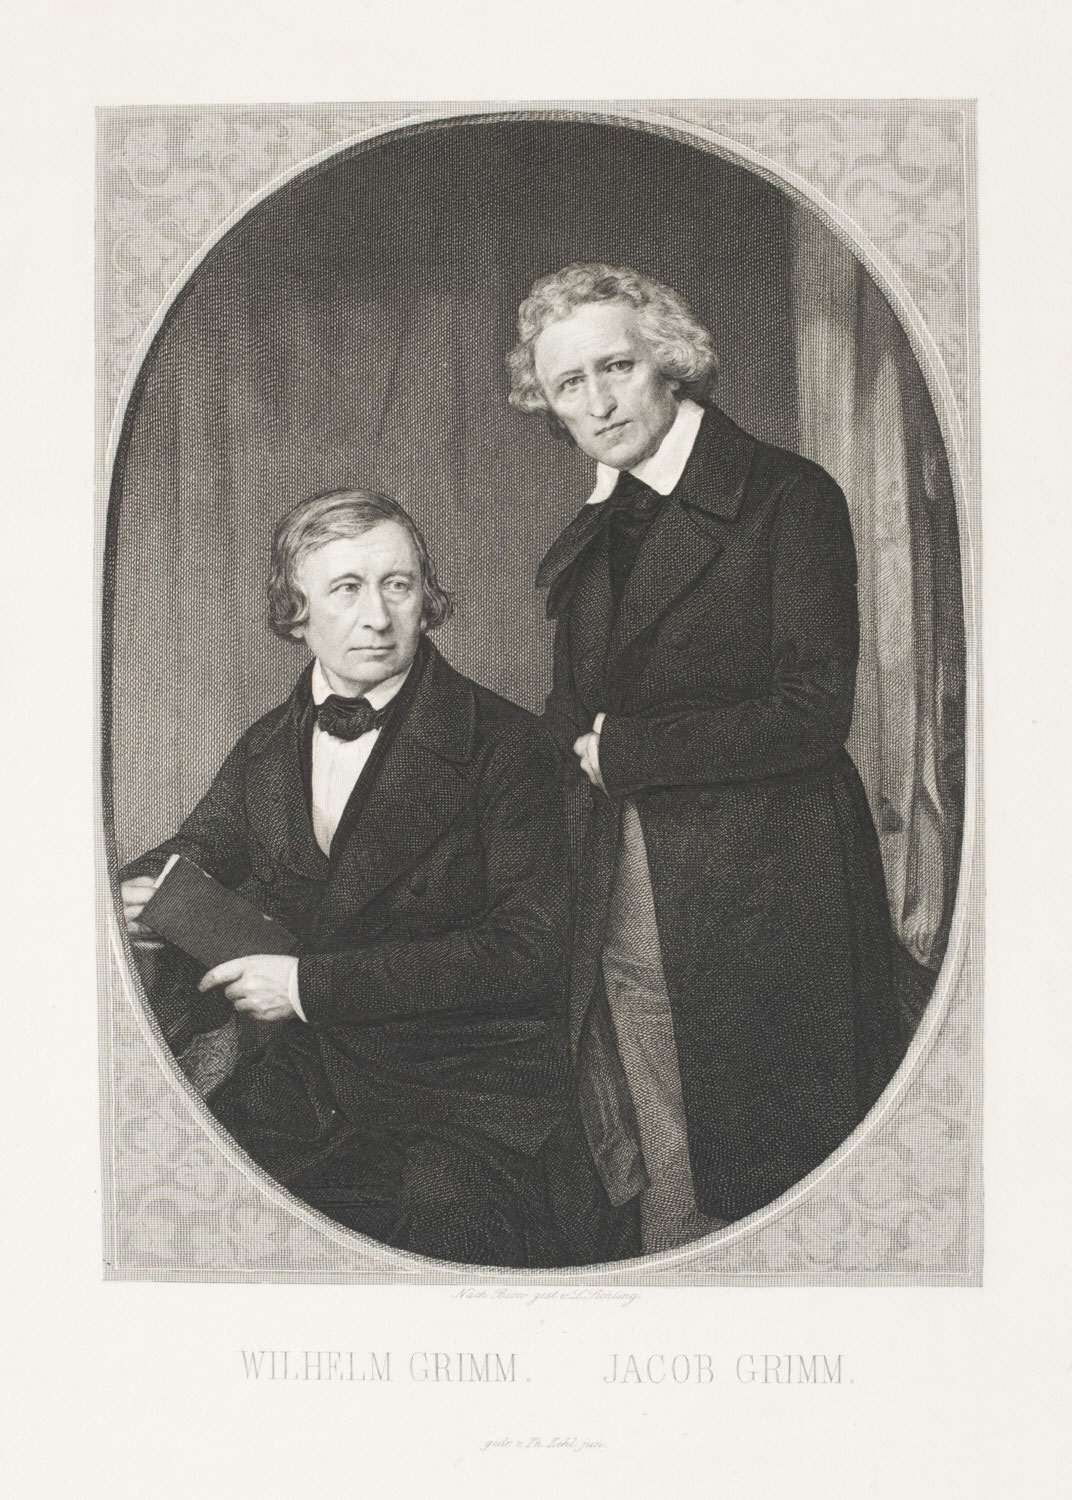 Portrait of Wilhelm and Jacob Grimm (The Brothers Grimm)